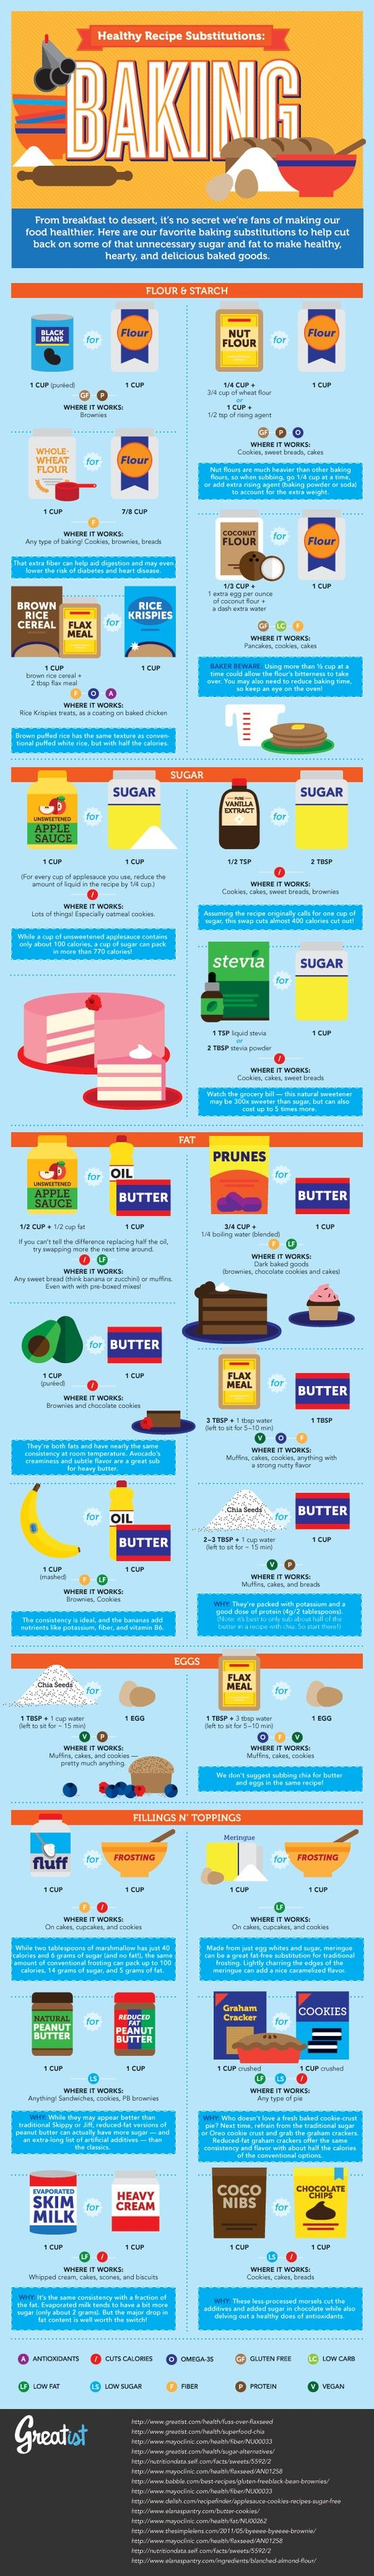 Clean Eat Substitutions: Baking